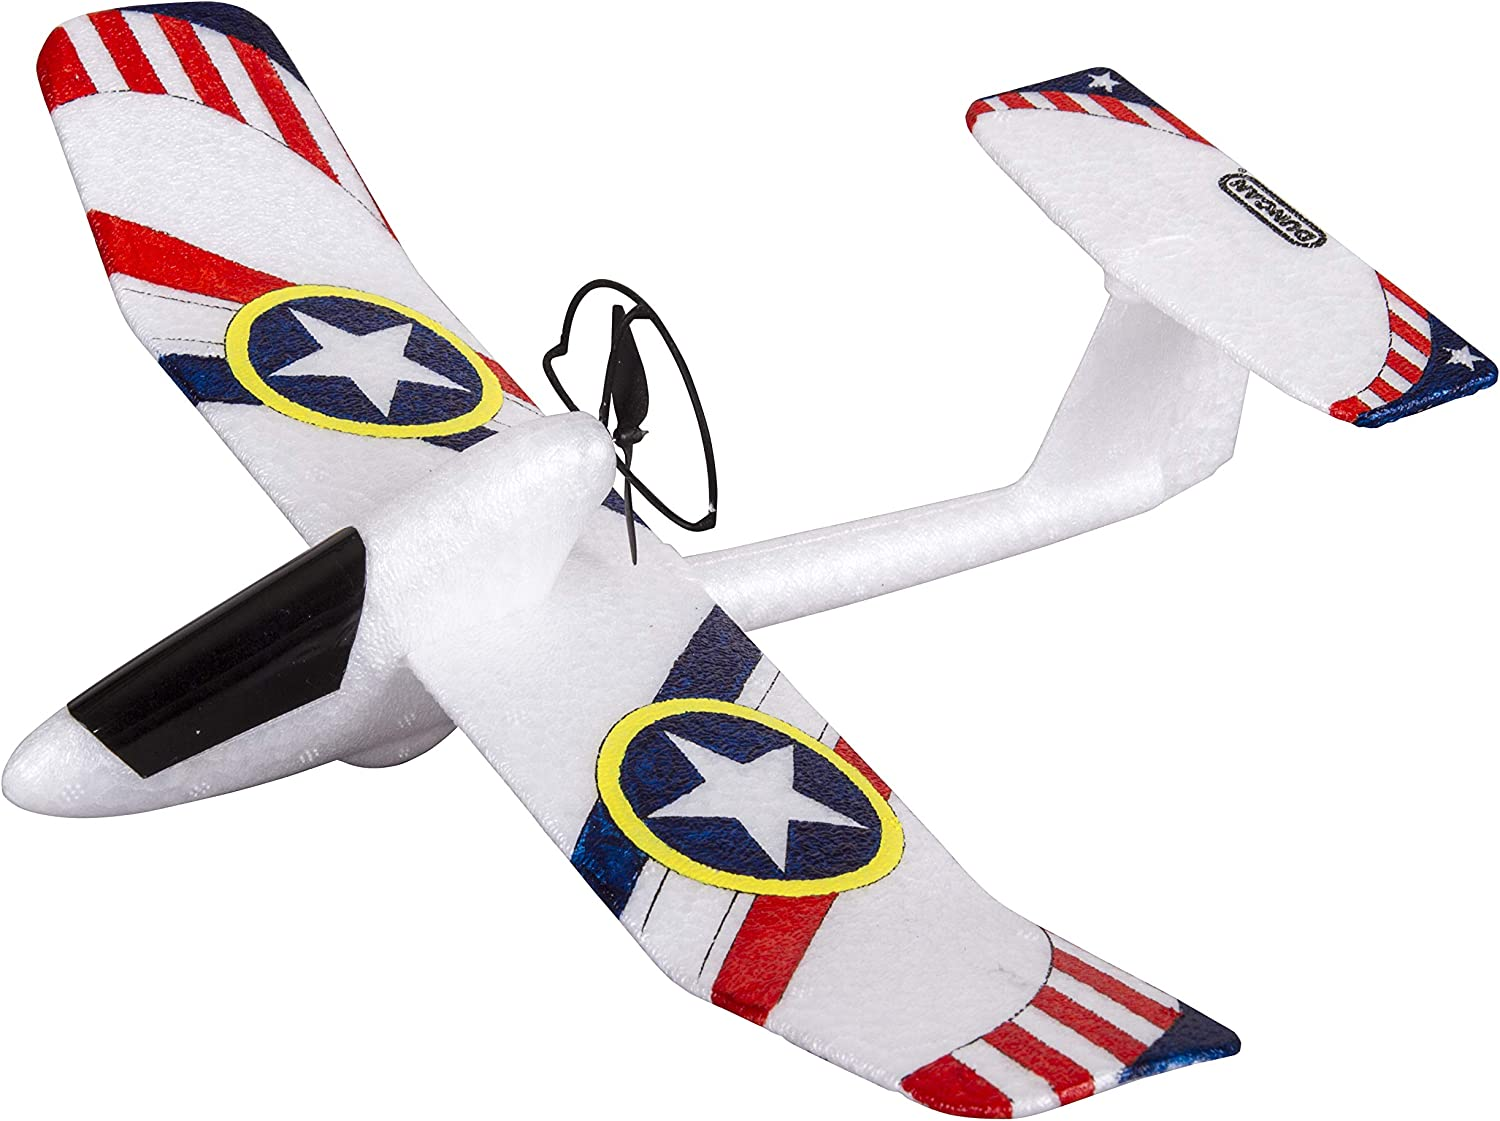 2 Flight Positions Extra Propellers USB Charger Duncan Toys EX-1 Glider Plane Power Assist Motorized Toy with Template Paint Kit Cable